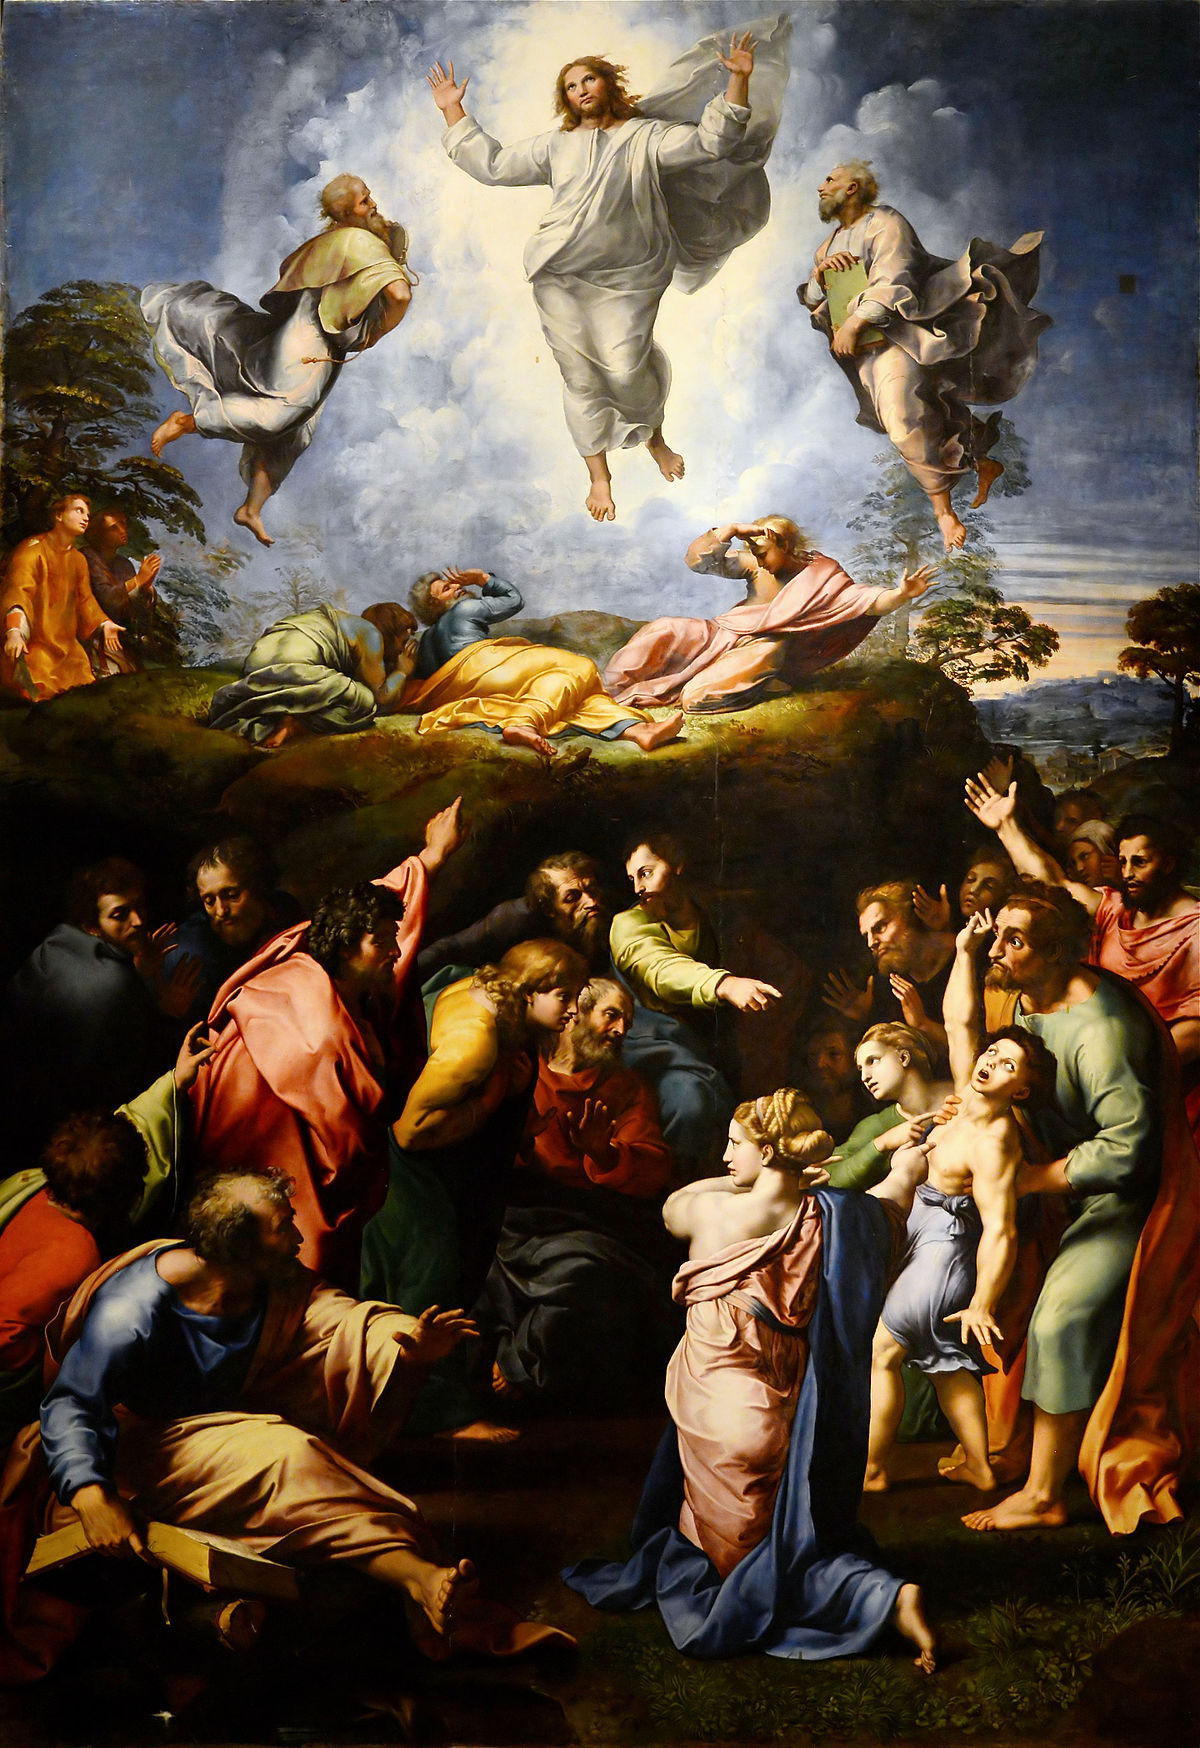 BN Nov 18 Transfiguration by Raphael